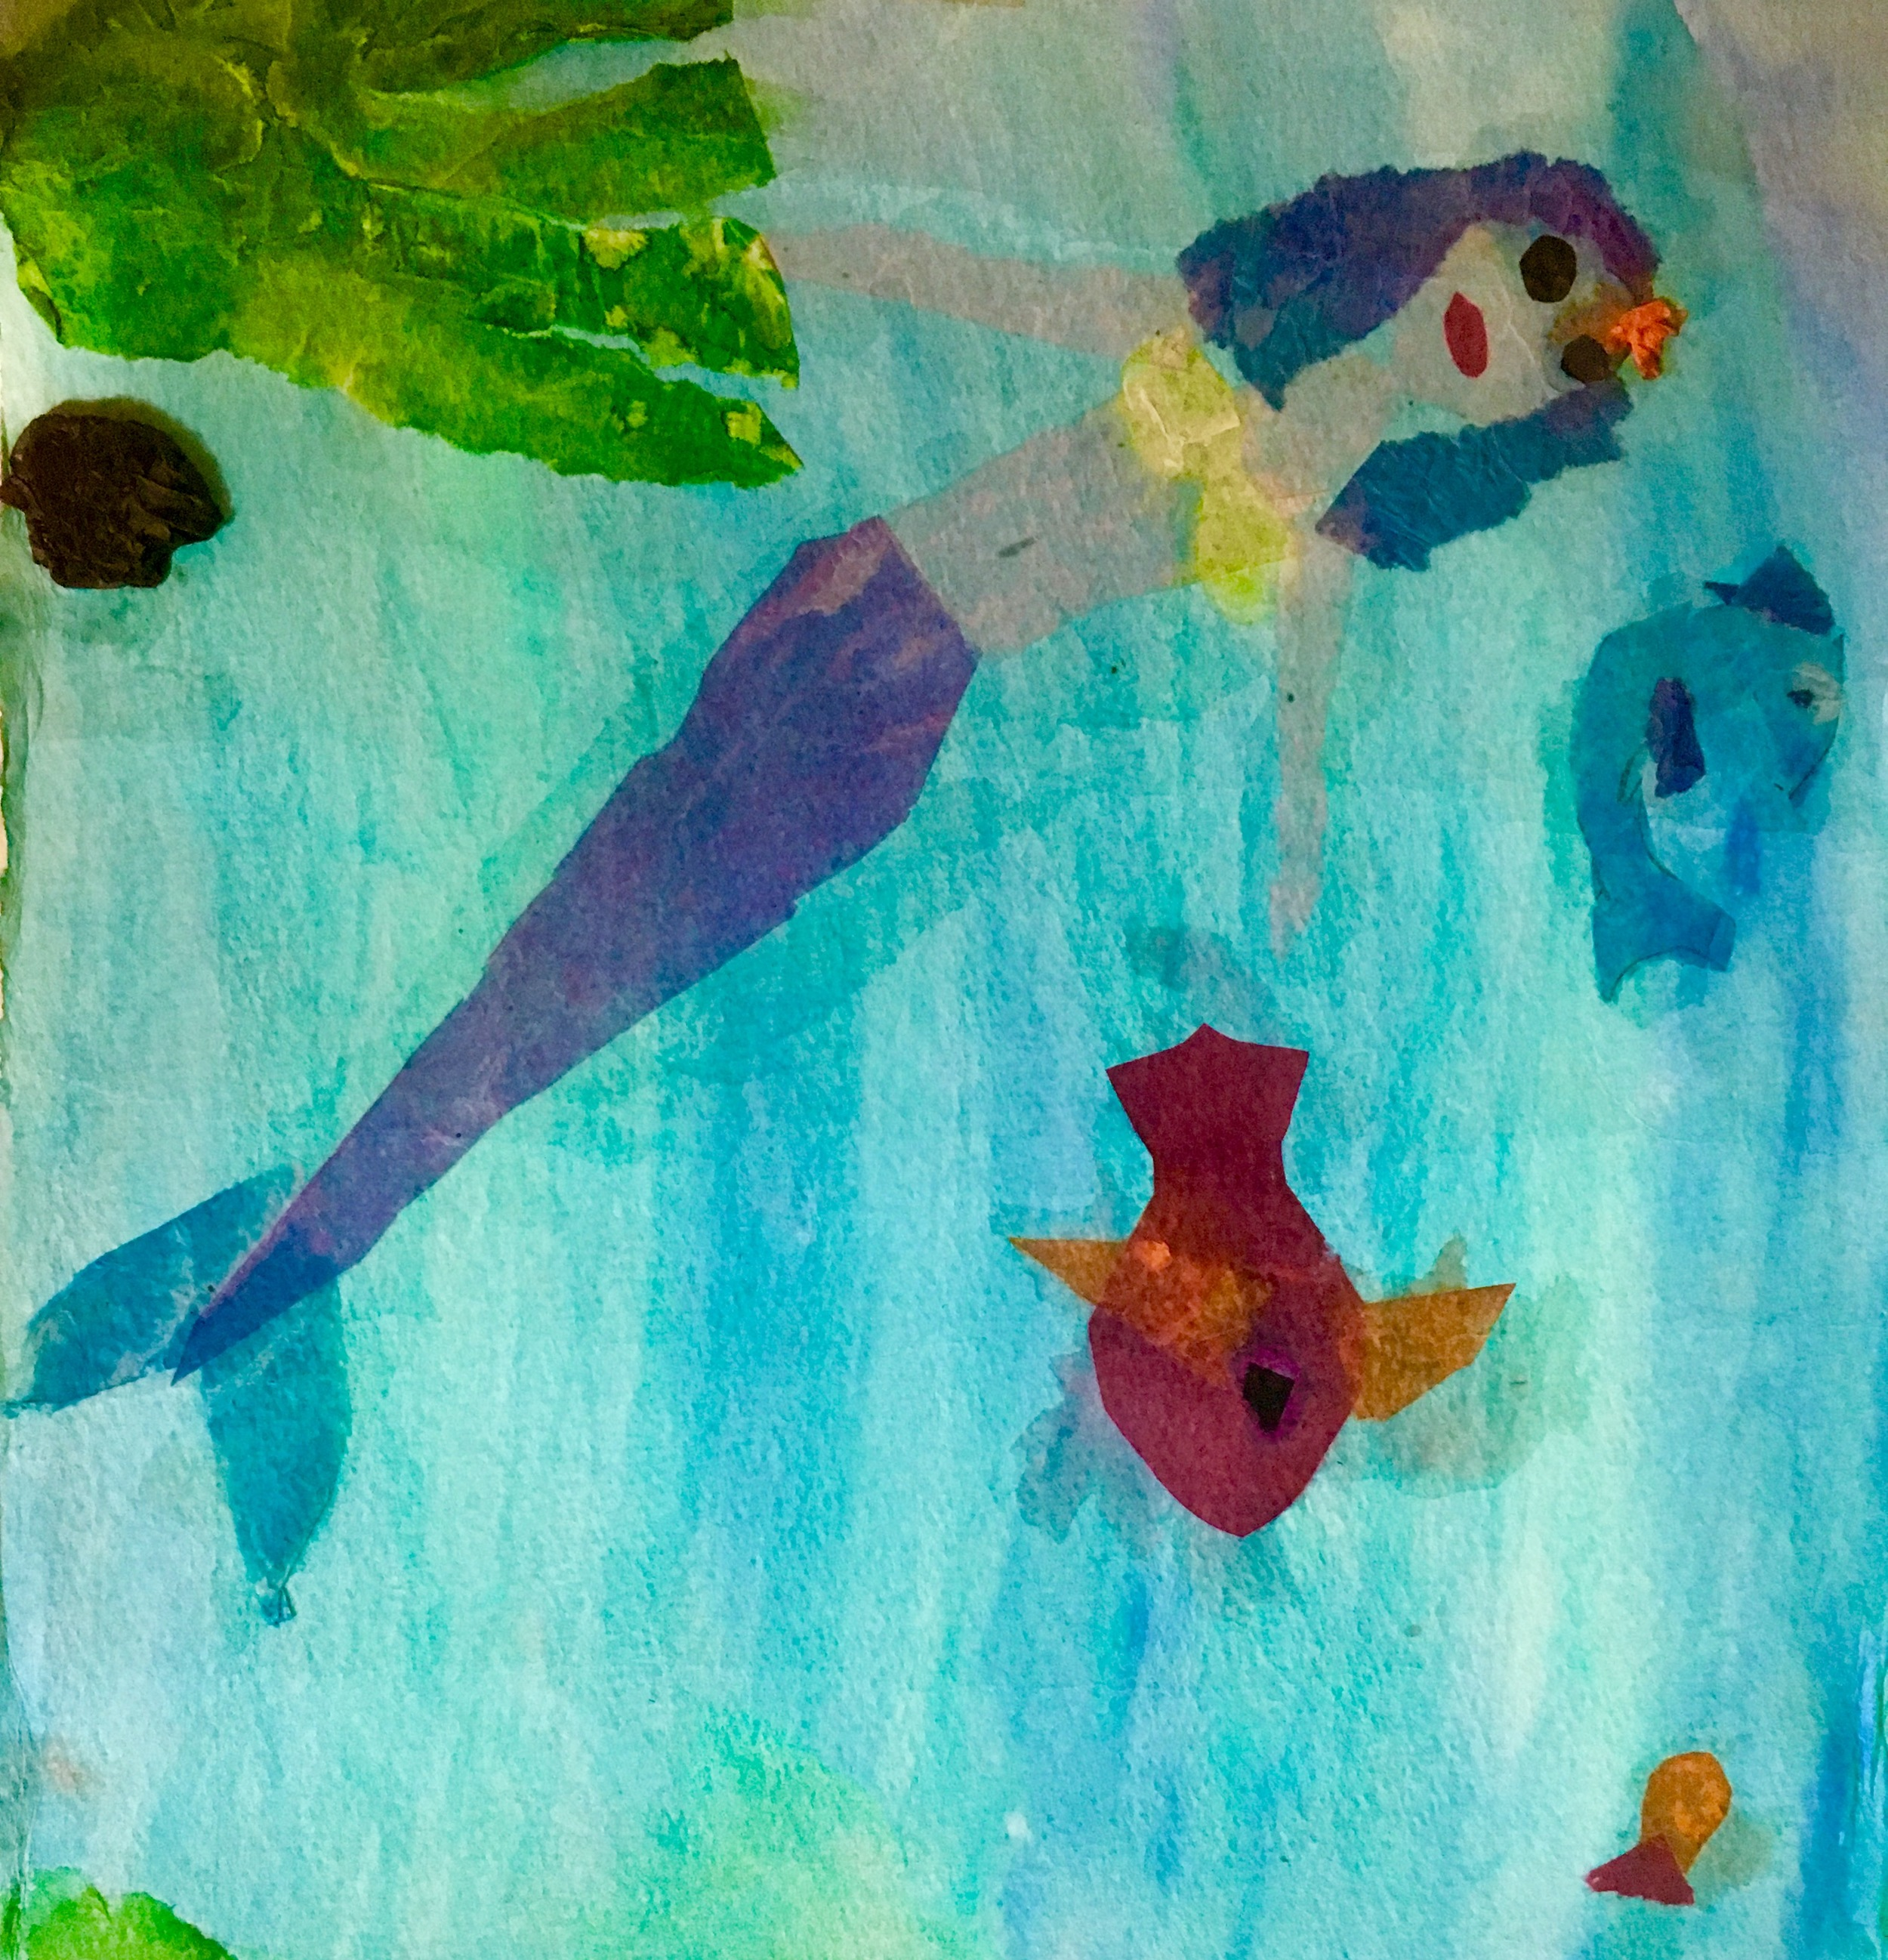 This bored, bug-eyed mermaid and her fishy friend was probably created during a school art class circa 1997. My older sister loved drawing mermaids, and I always copied her. She loved that.